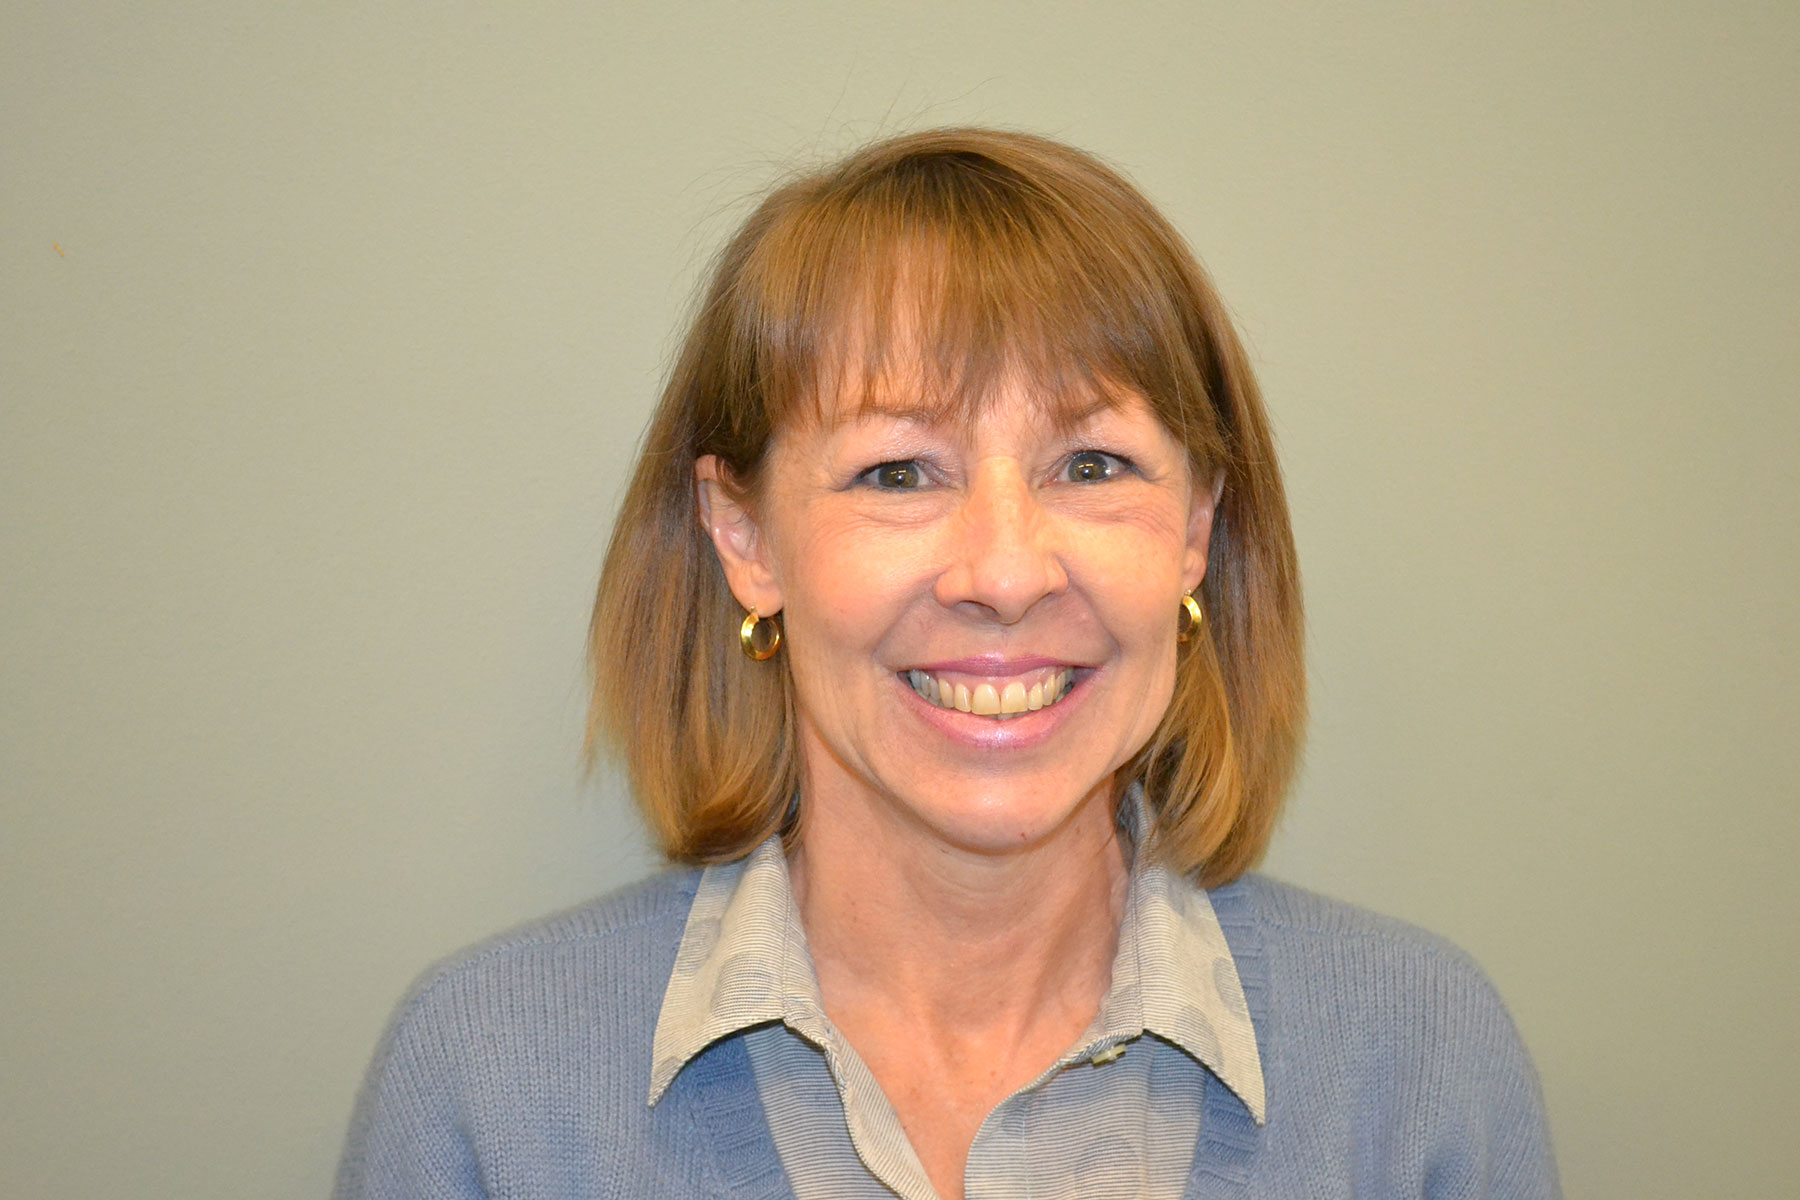 HighPointe Welcomes New Enrichment Program Executive Director, Sandy Polizzotto